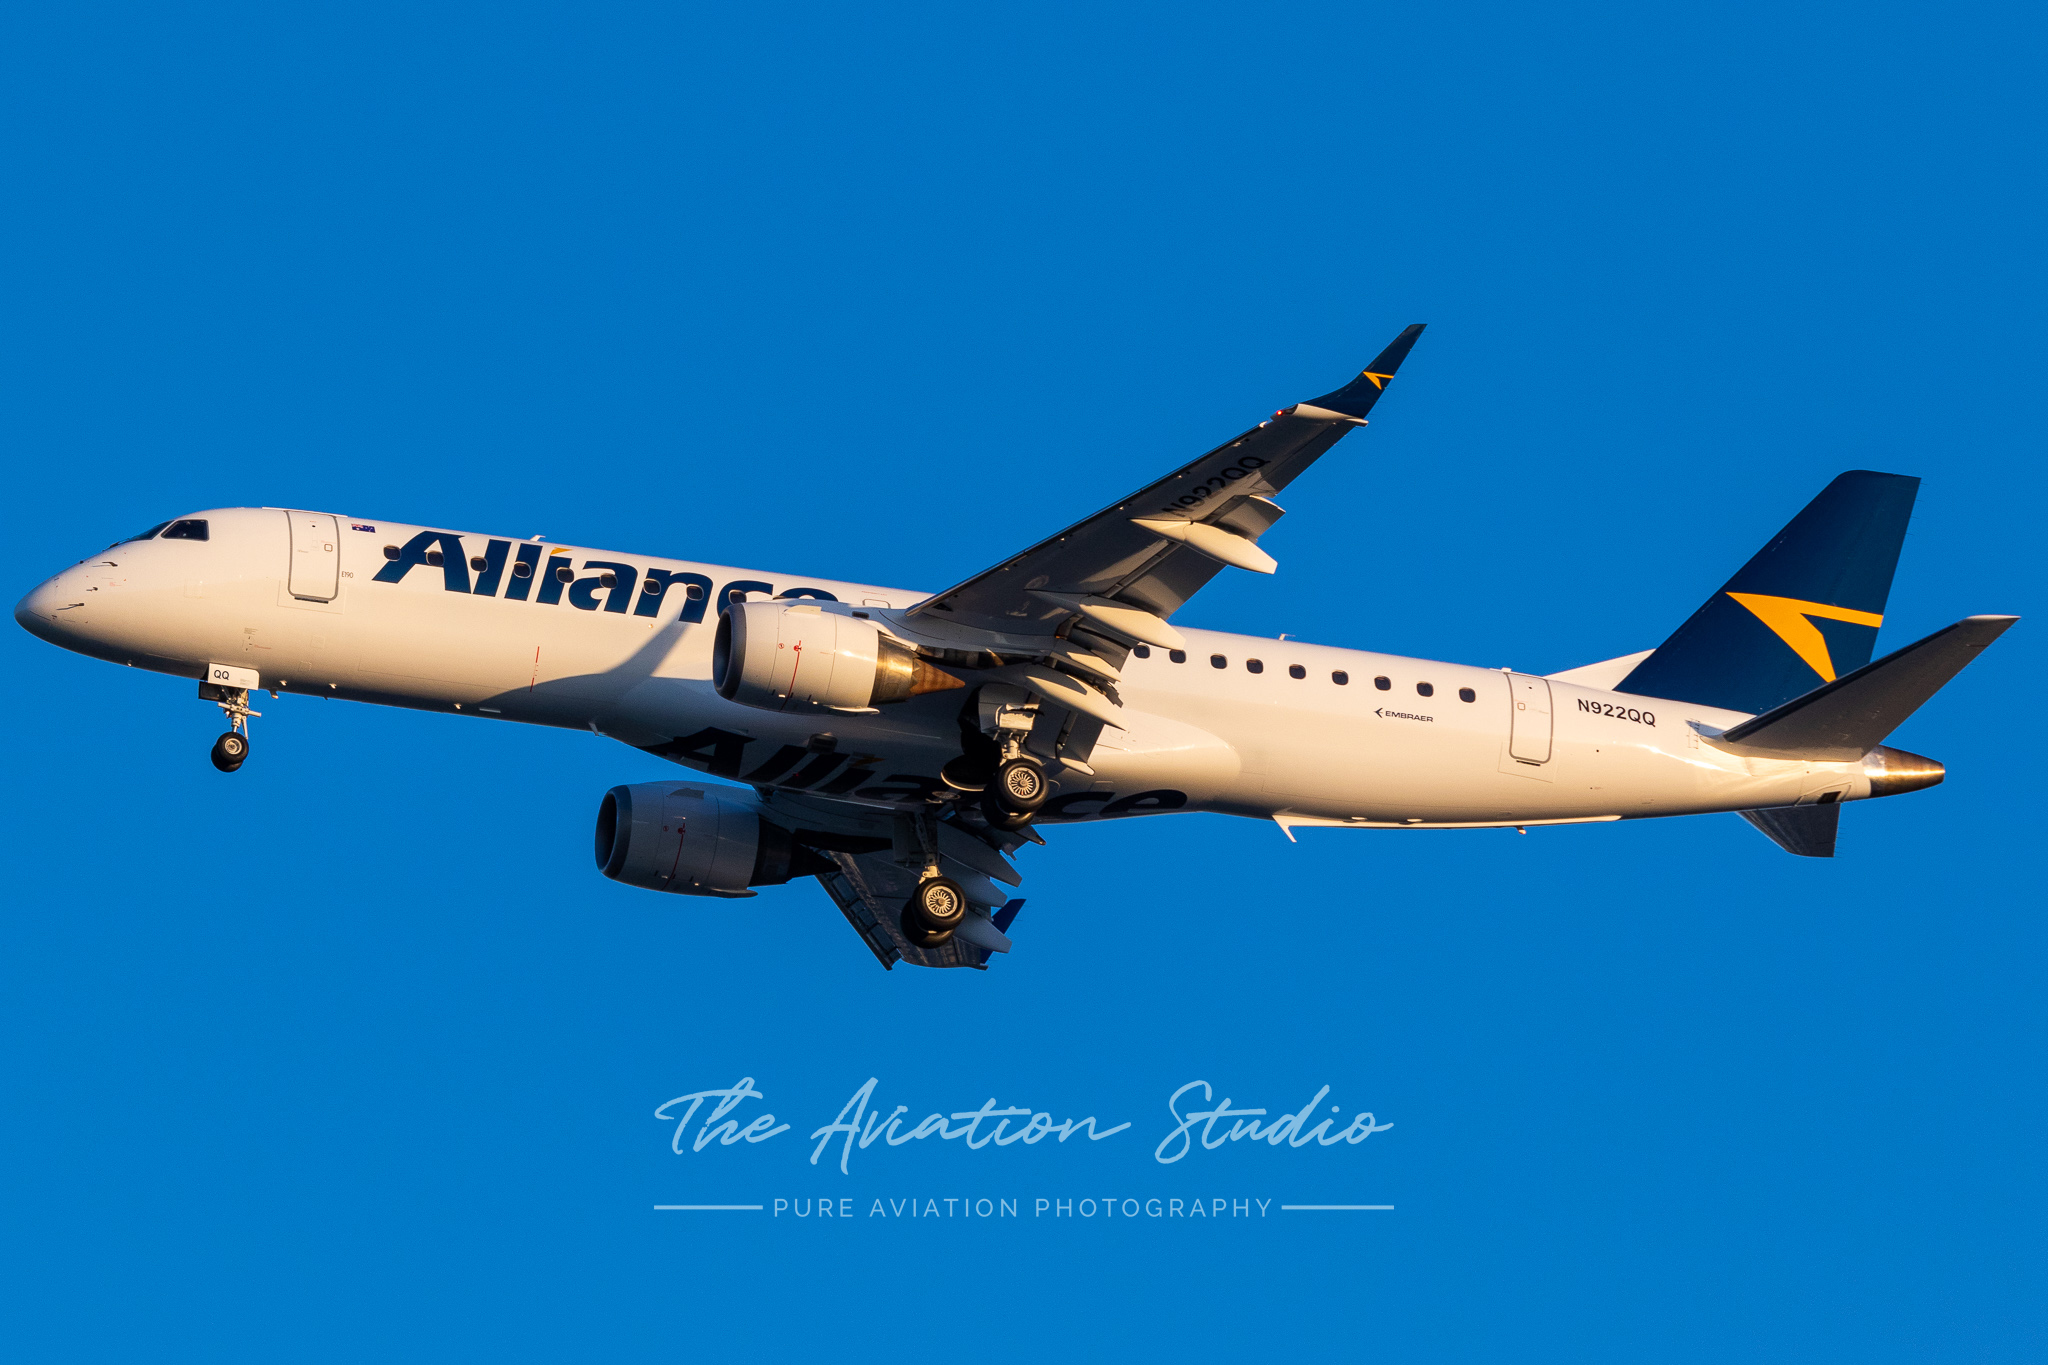 Alliance ERJ-190 N922QQ arriving into Brisbane Airport for the first time